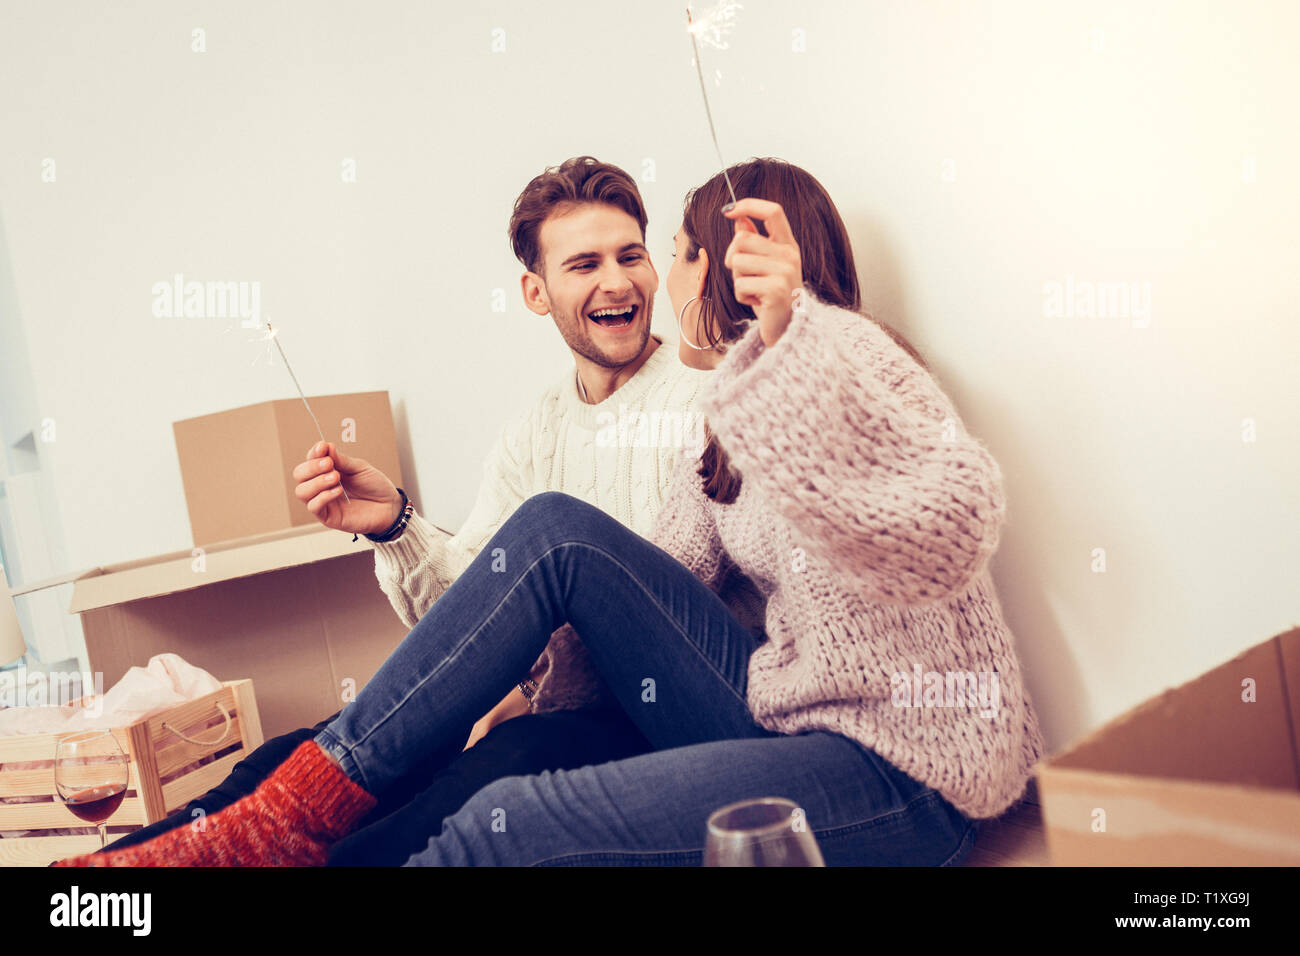 Handsome man laughing while firing sparklers with his wife - Stock Image